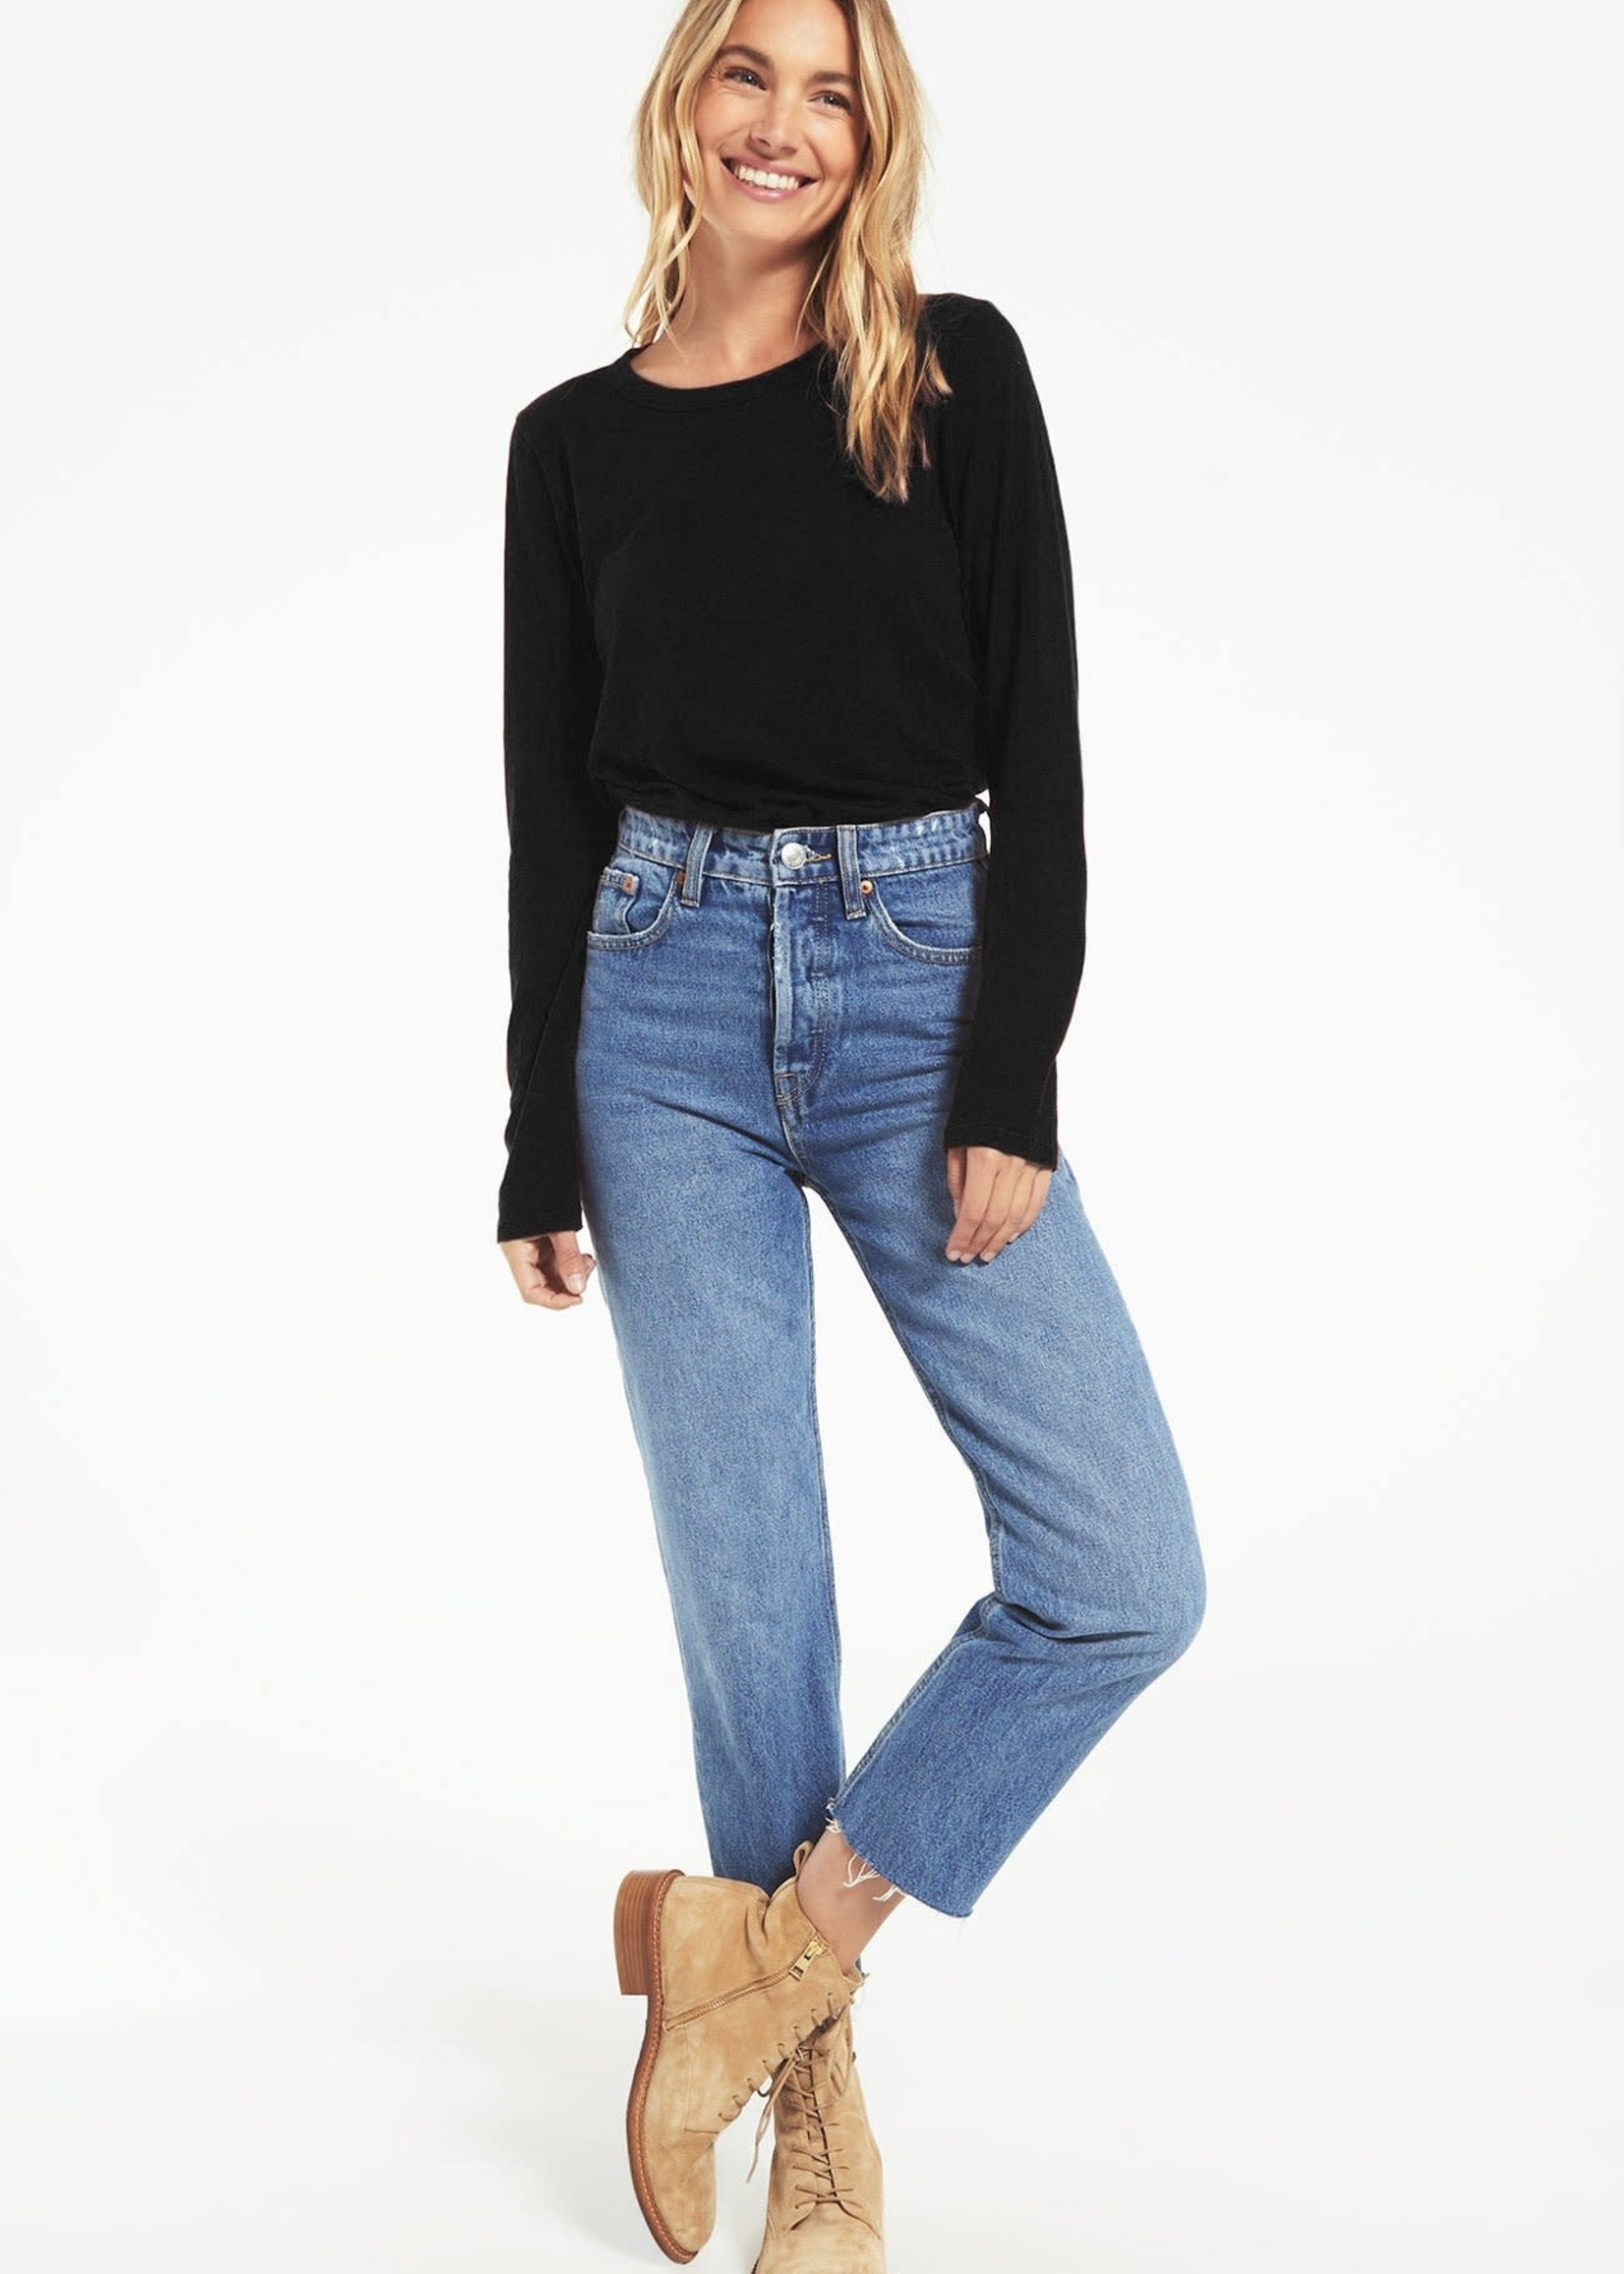 Z Supply Everyday Brushed Long Sleeve Top